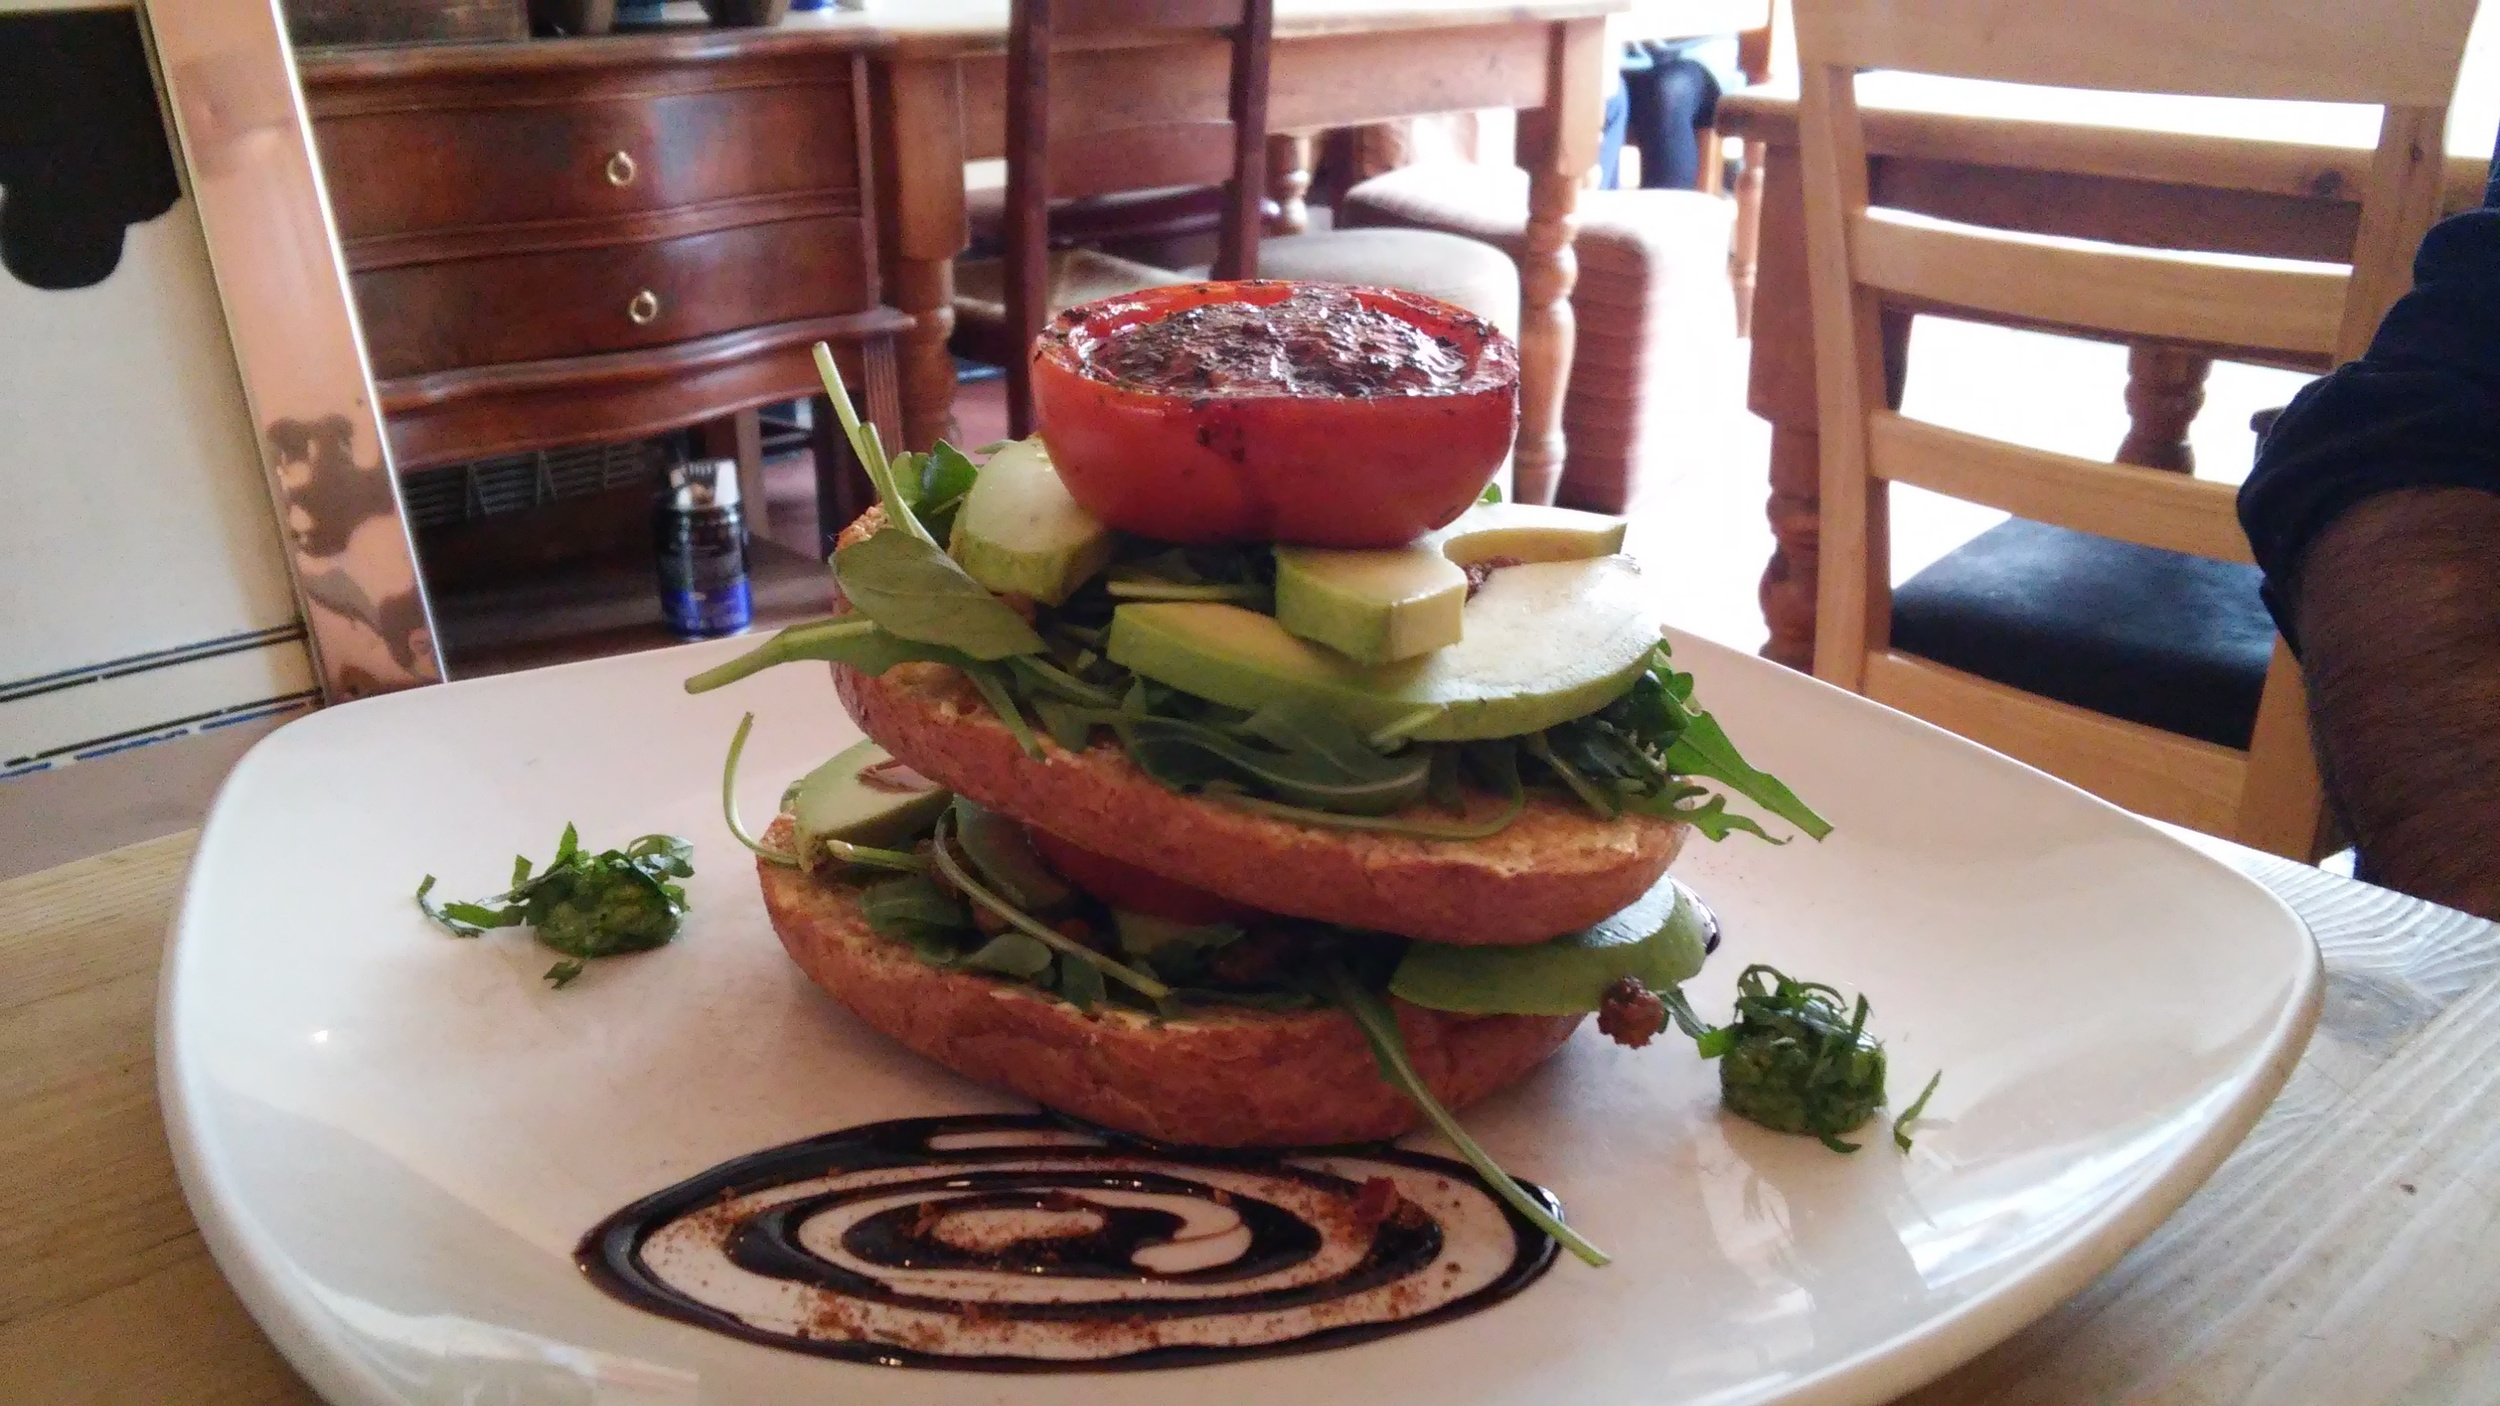 The griddle bagel with avocado, slow roast balsamic tomato, fresh rocket and cashew nut pesto topped with a balsamic reduction